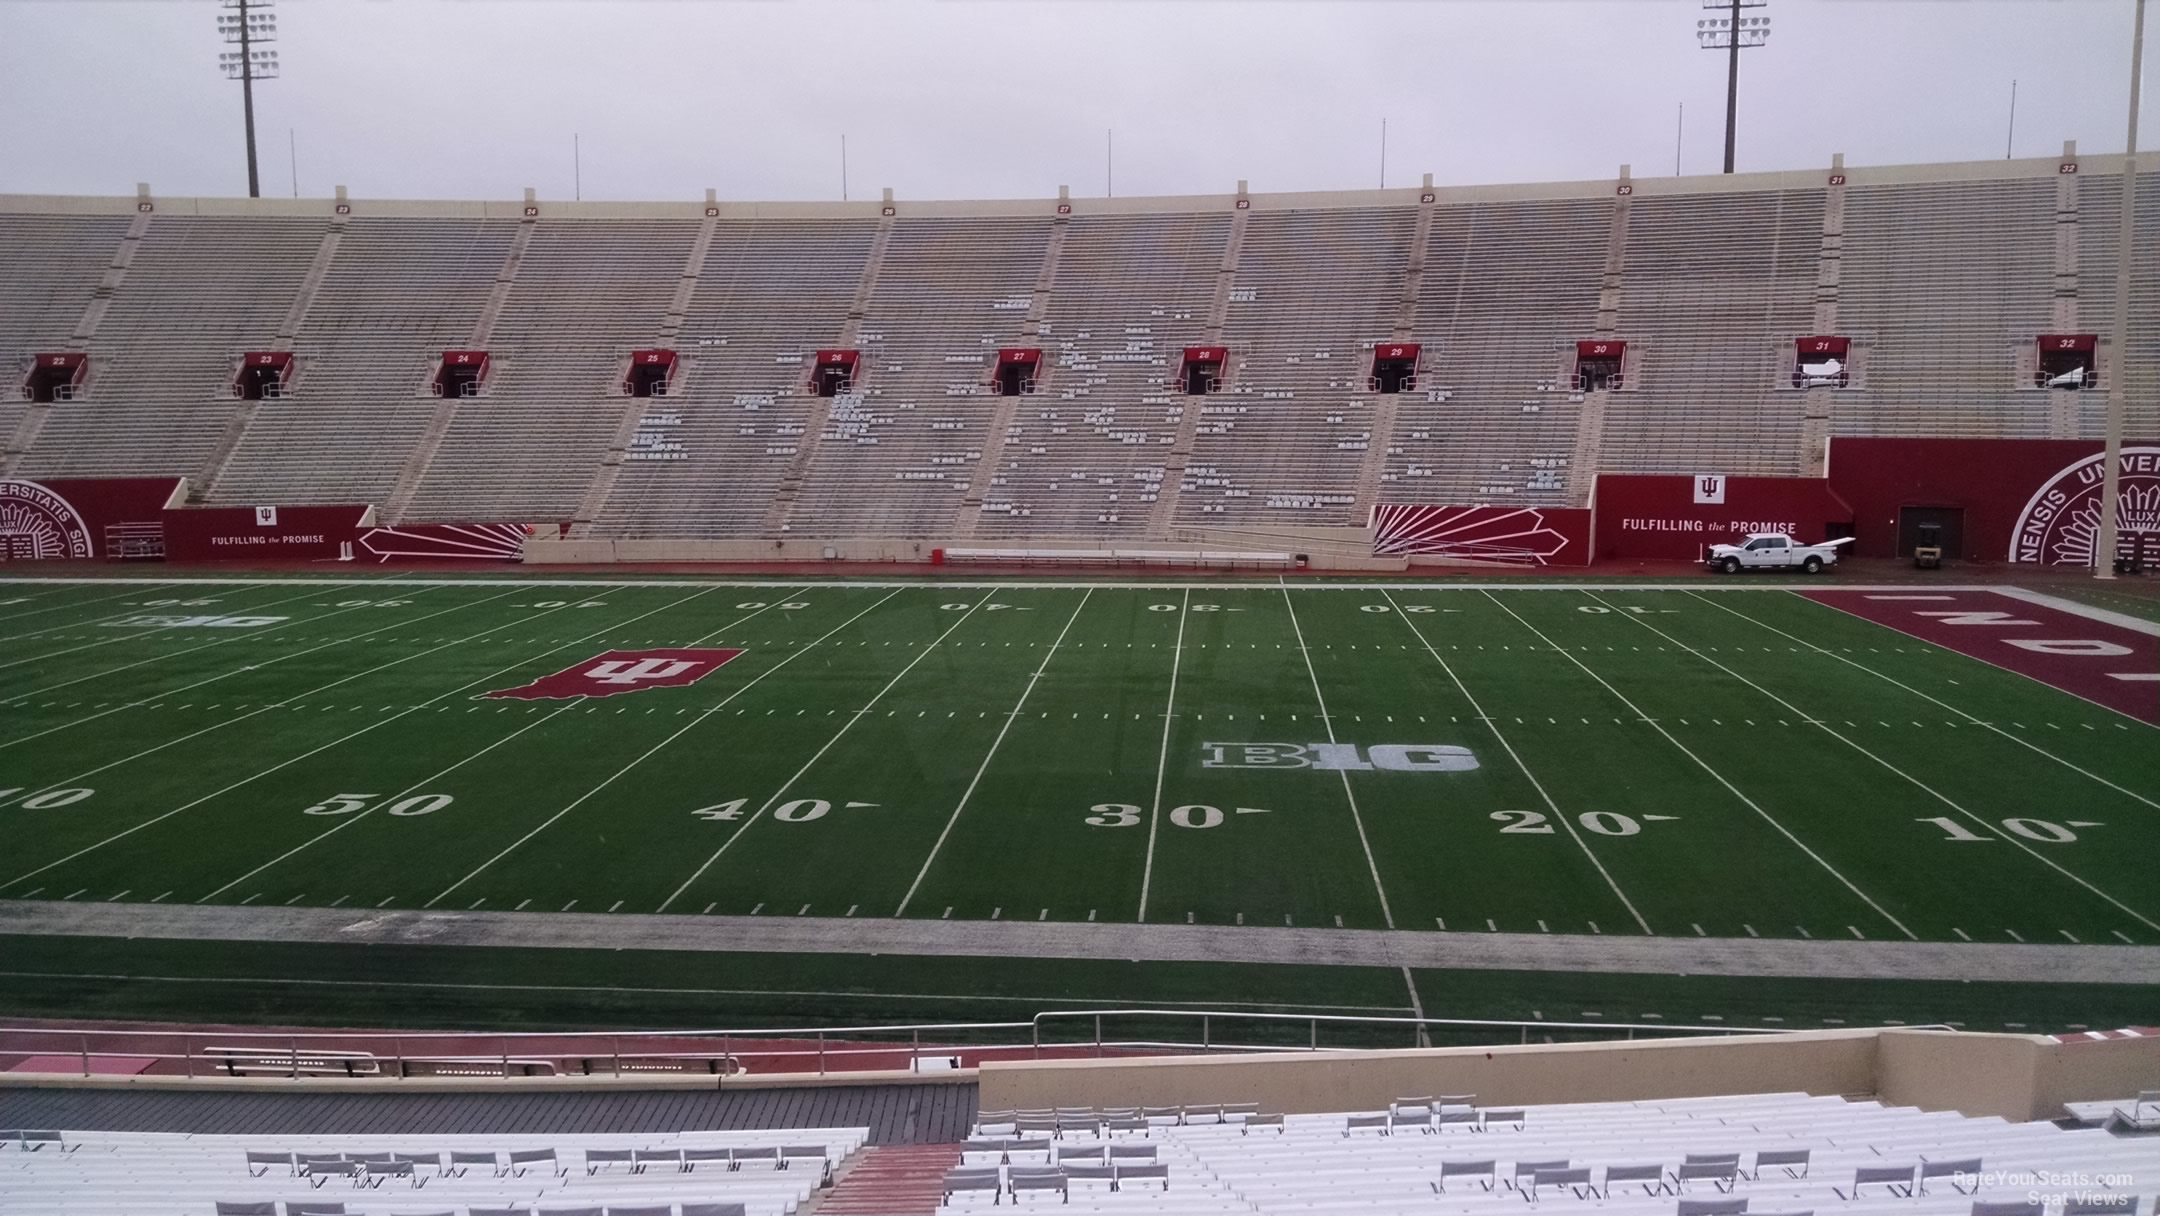 Seat View for Memorial Stadium Section 5, Row 30